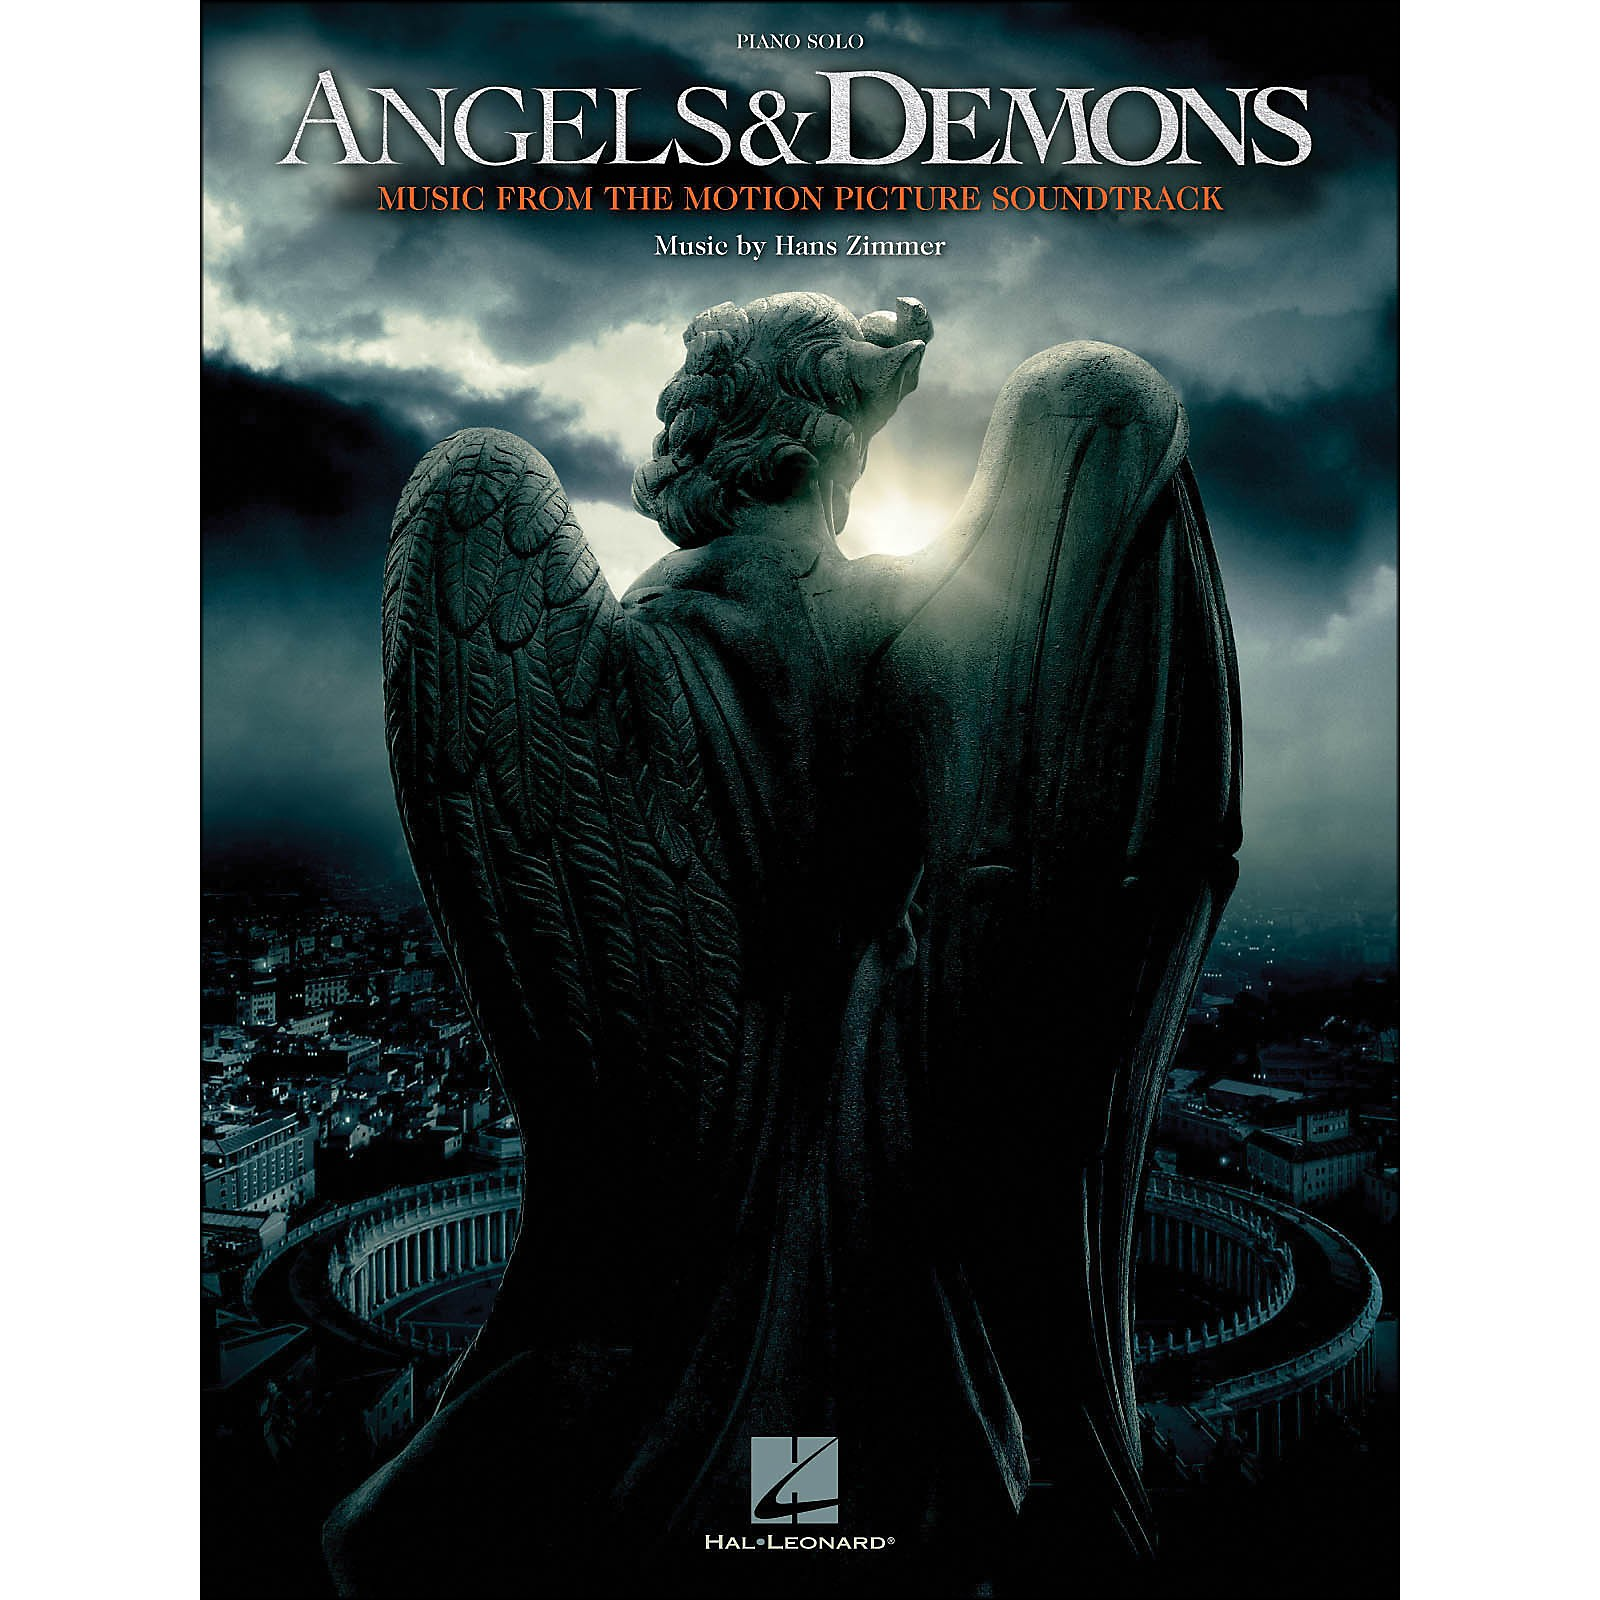 Hal Leonard Angels & Demons: Music From The Motion Picture Soundtrack arranged for piano solo